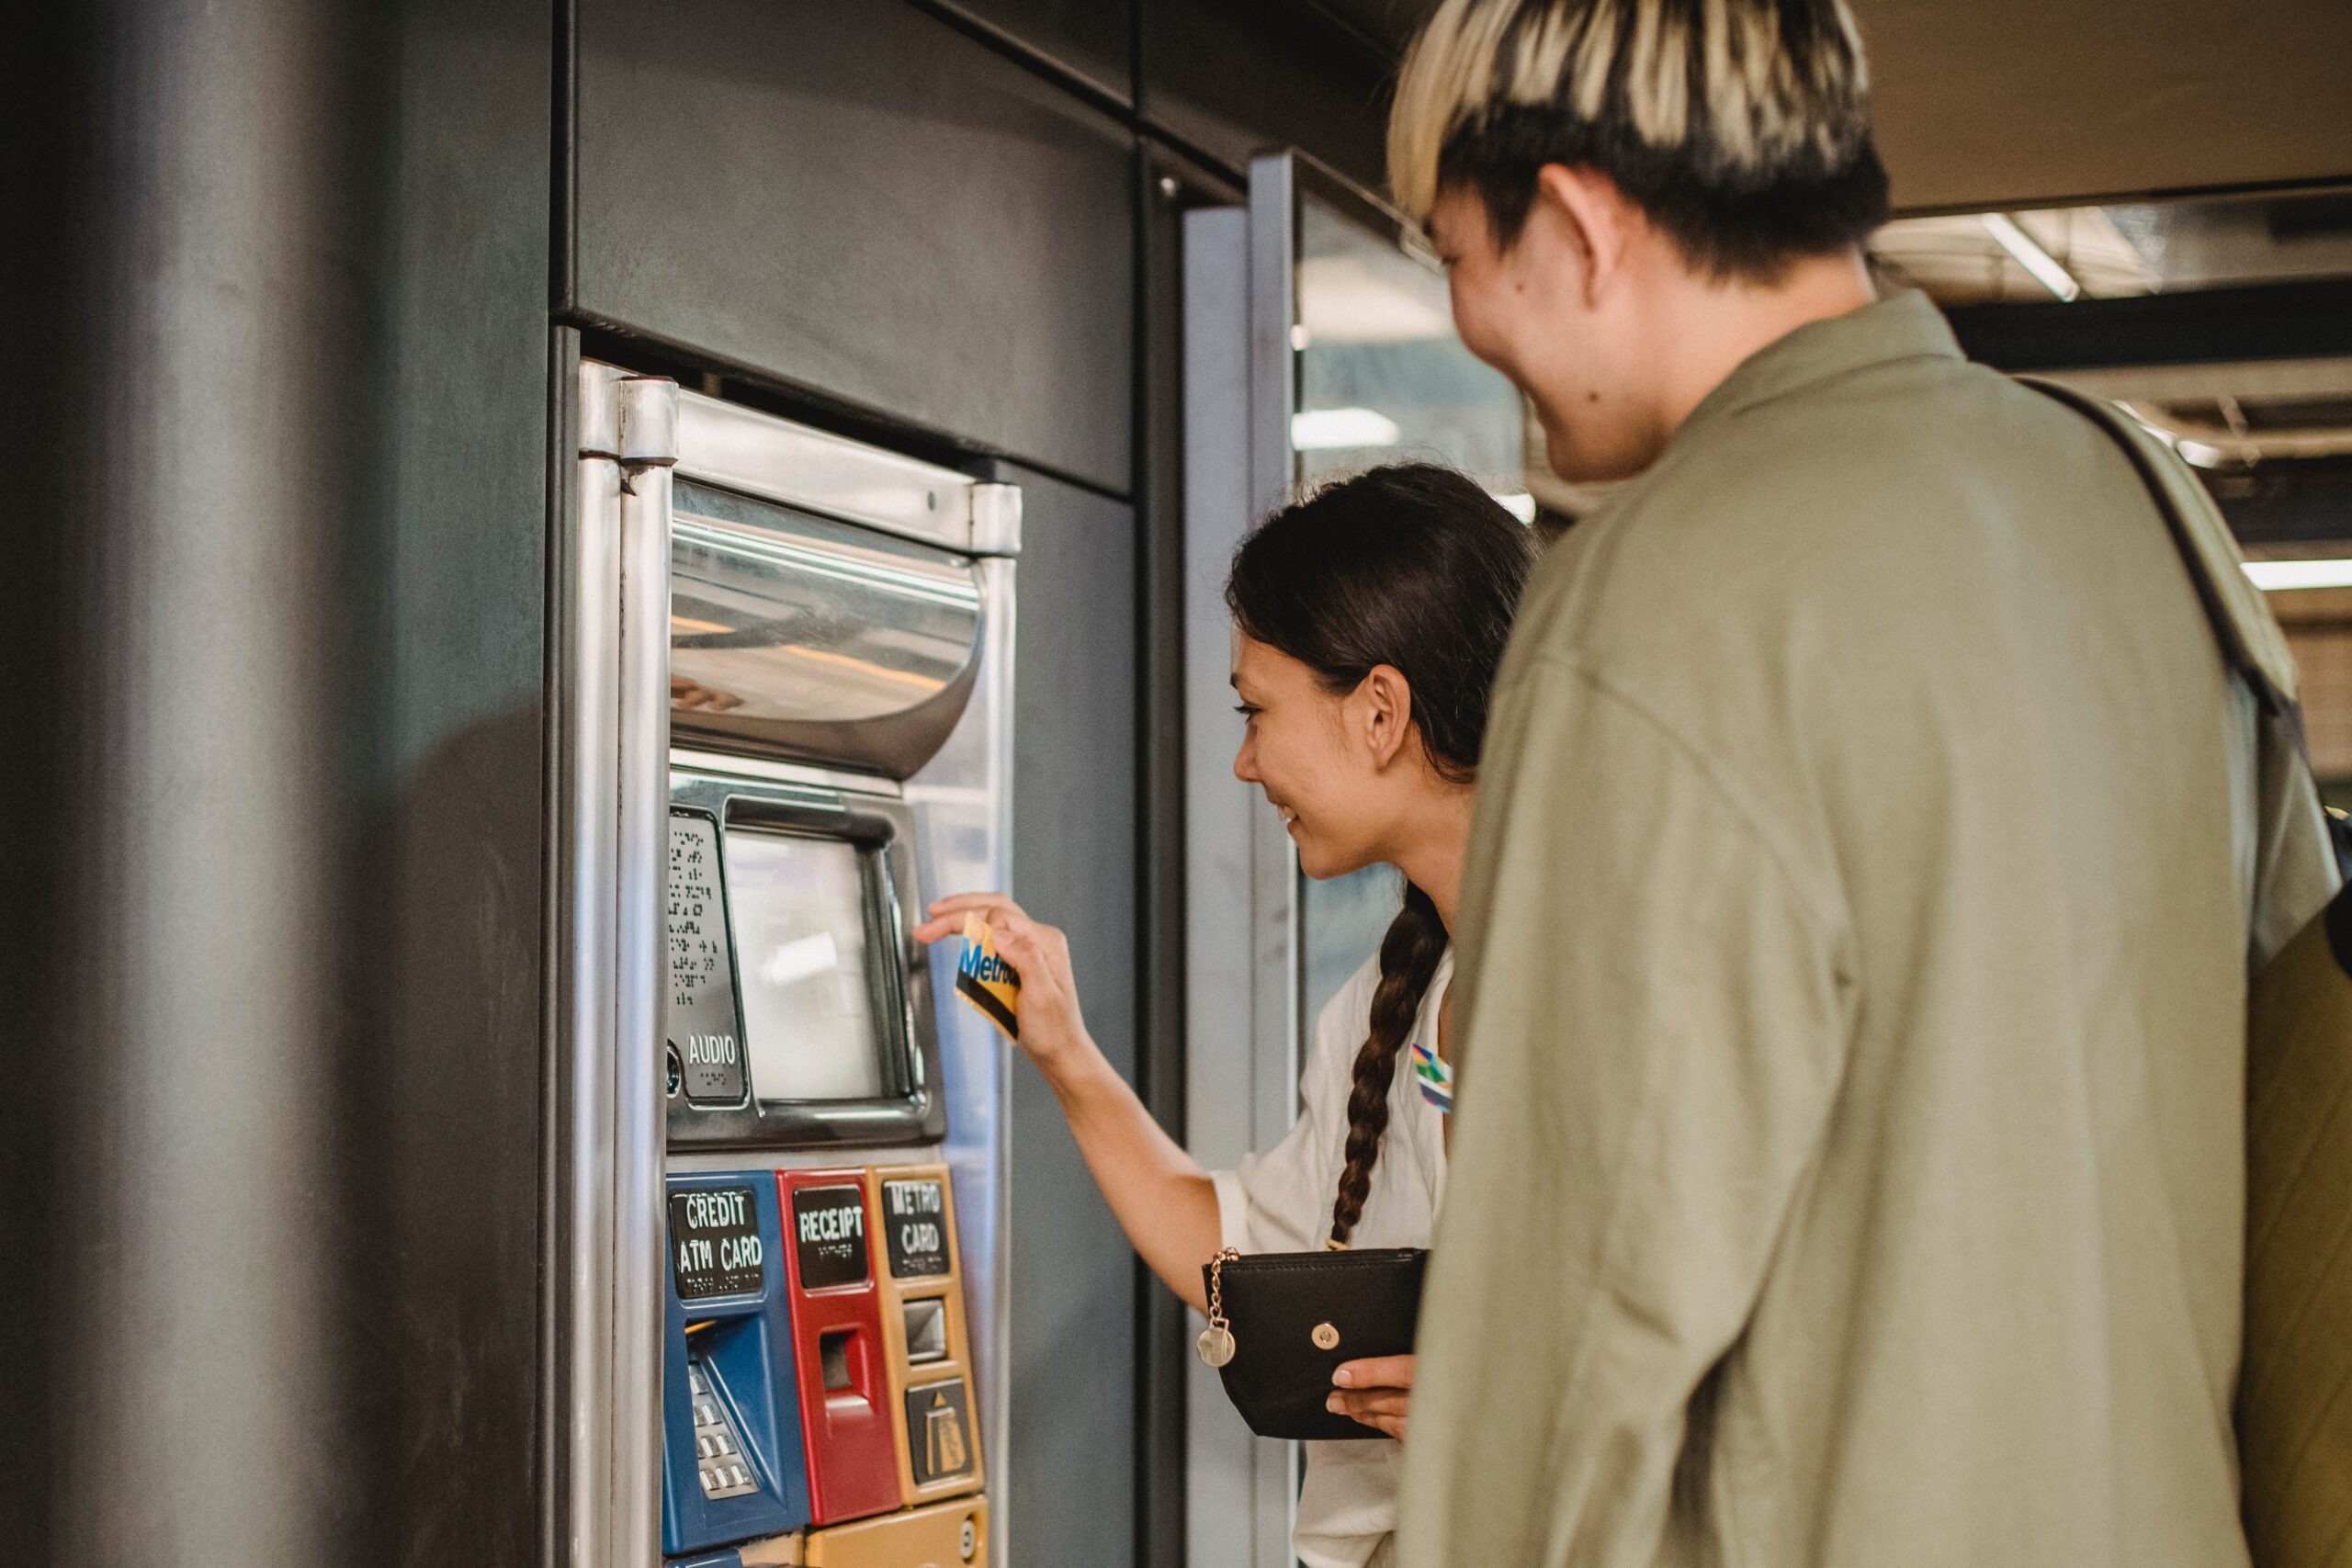 ATM card in the Indian banking system can only be used to withdraw money from ATM